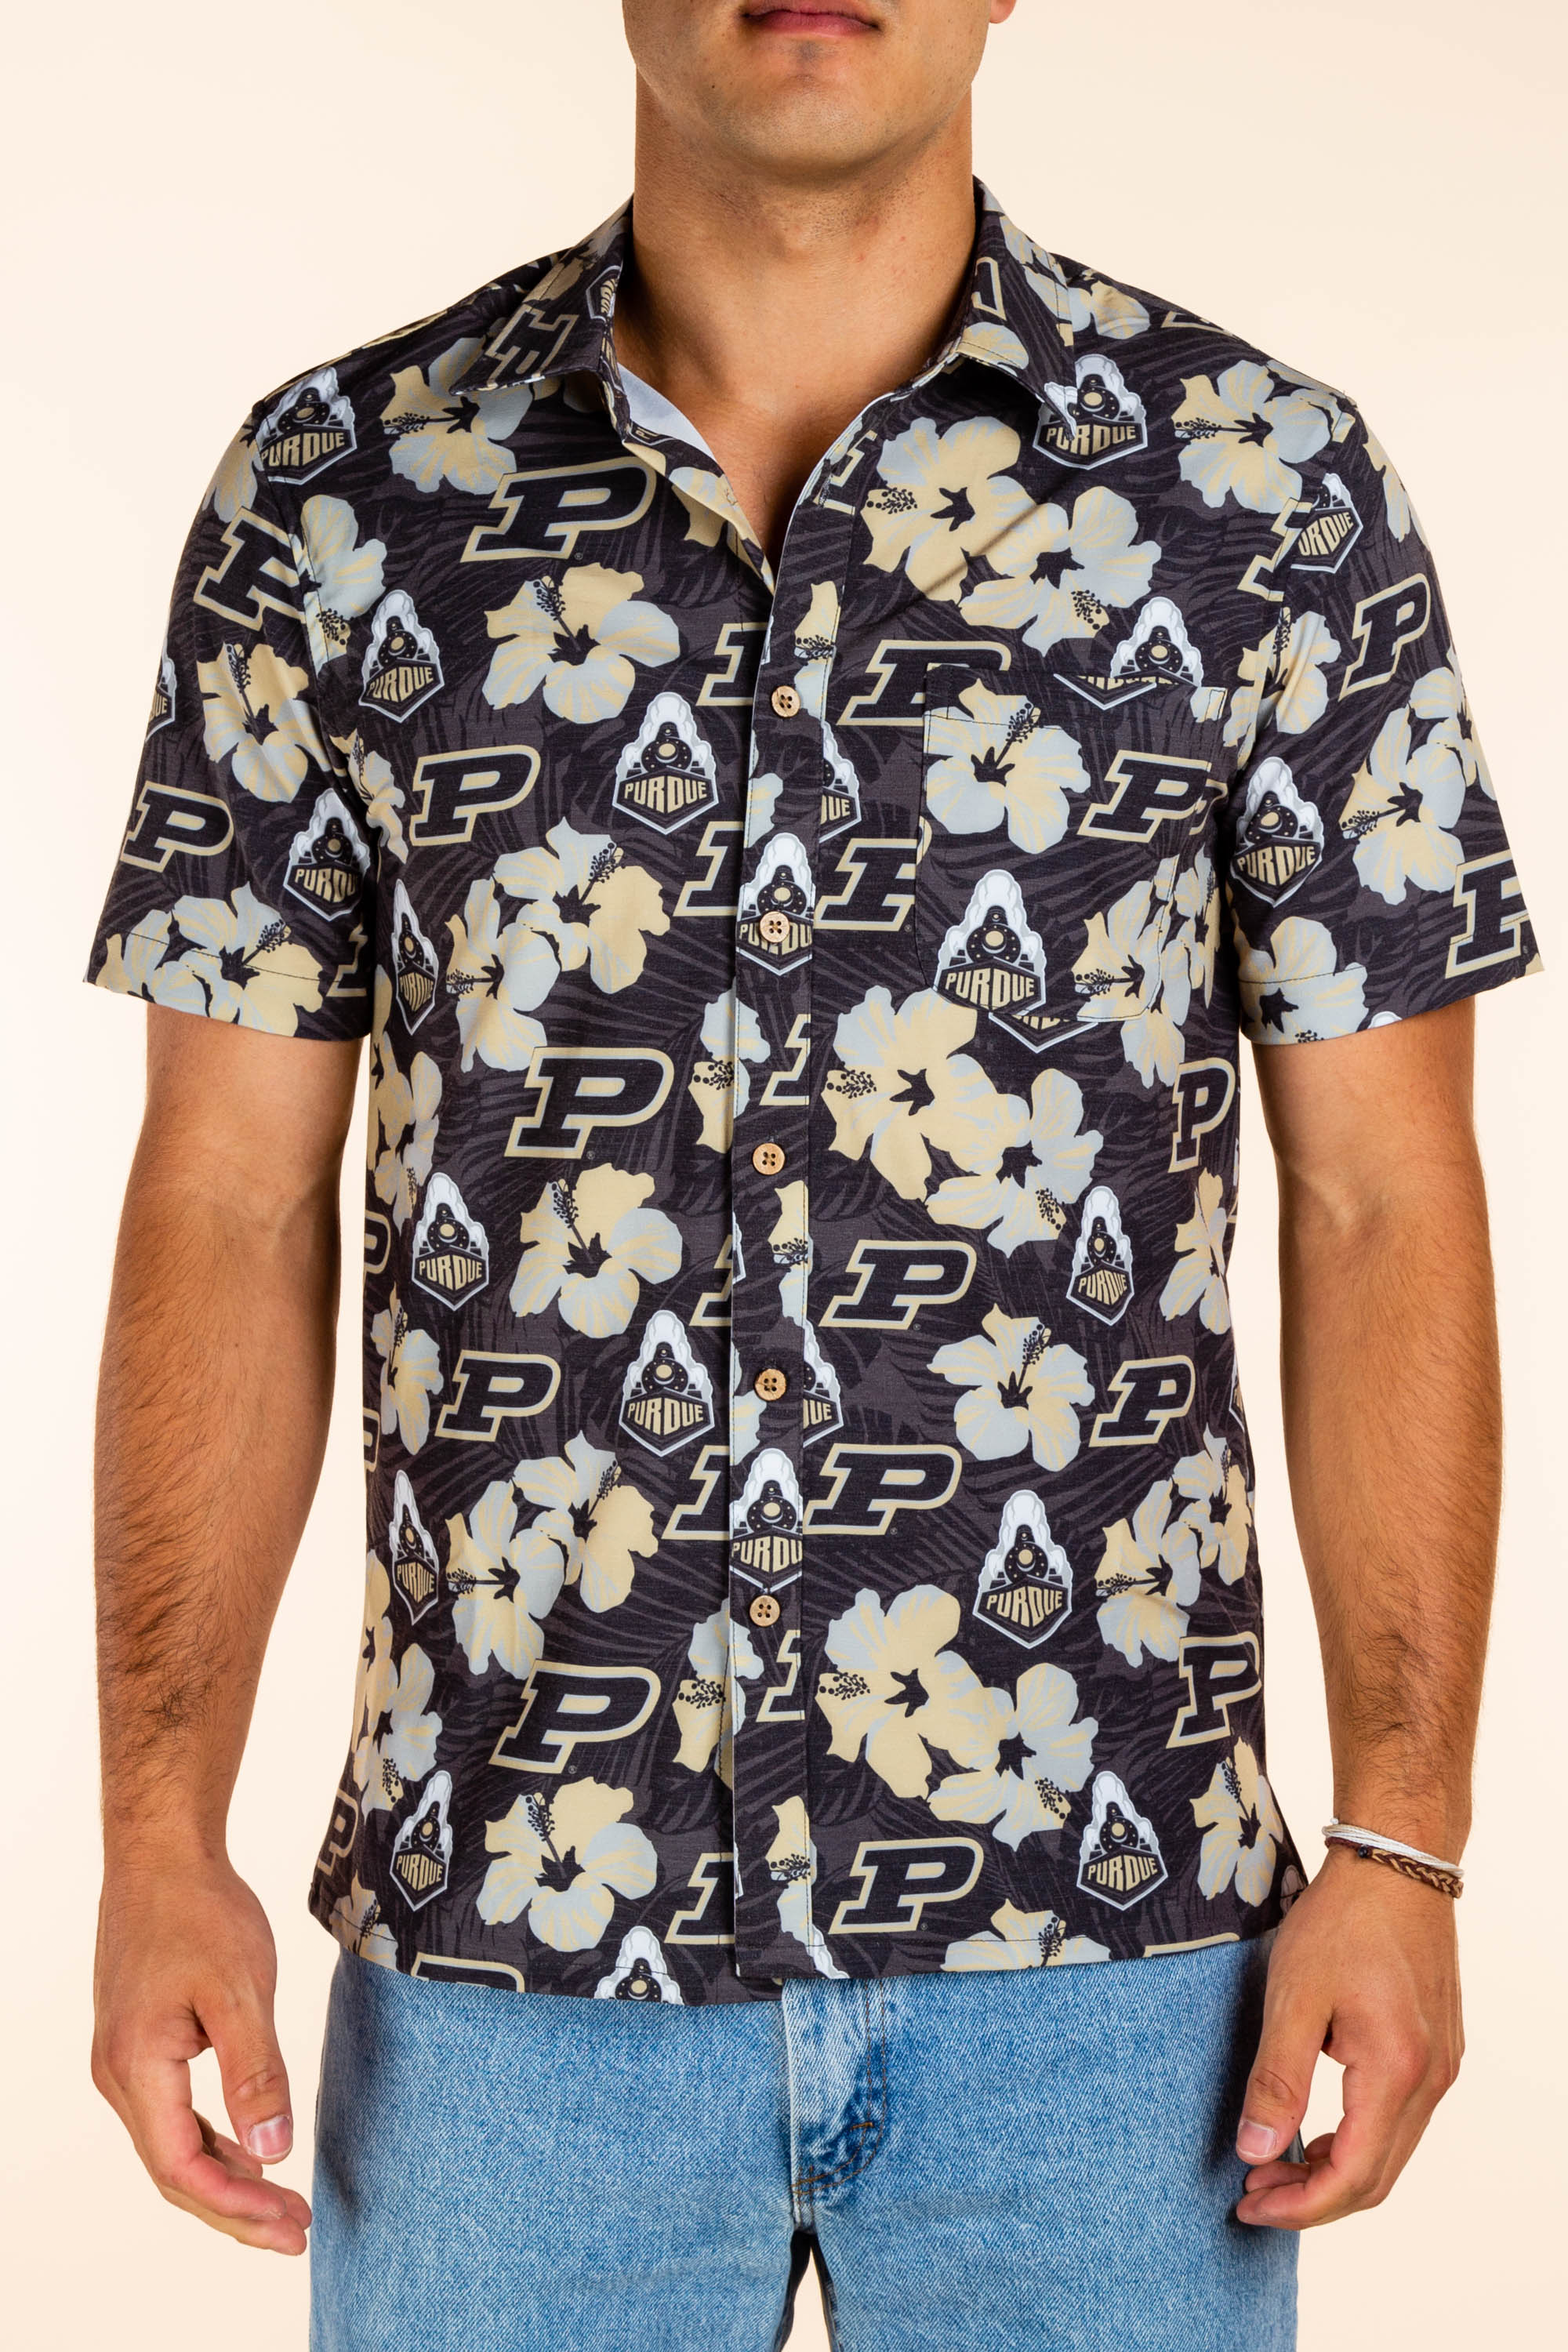 Purdue University Hawaiian Camp Shirt